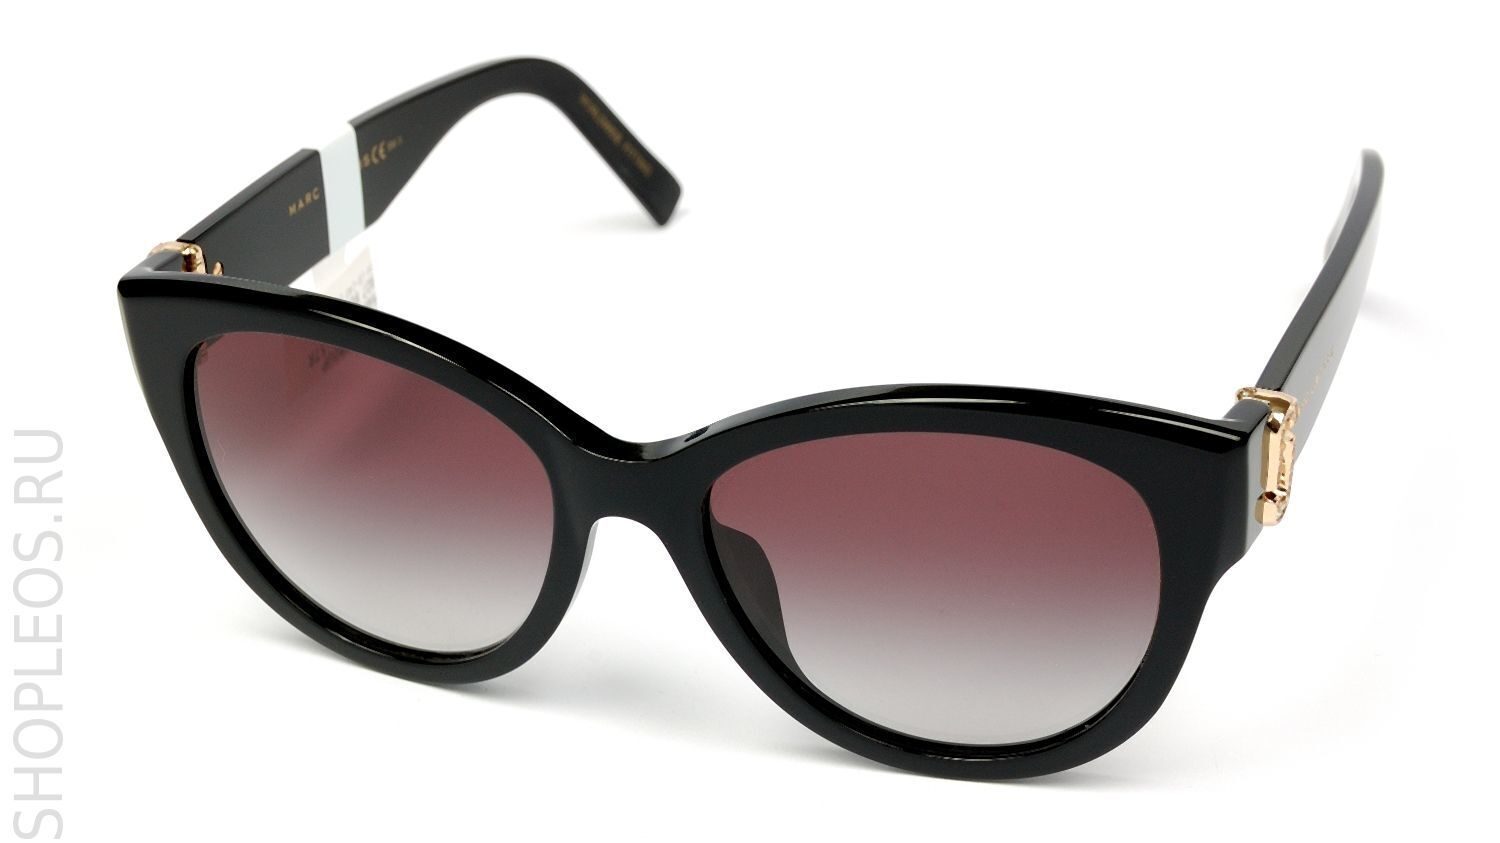 MARC JACOBS WOMAN MARC 181/S/STR 807